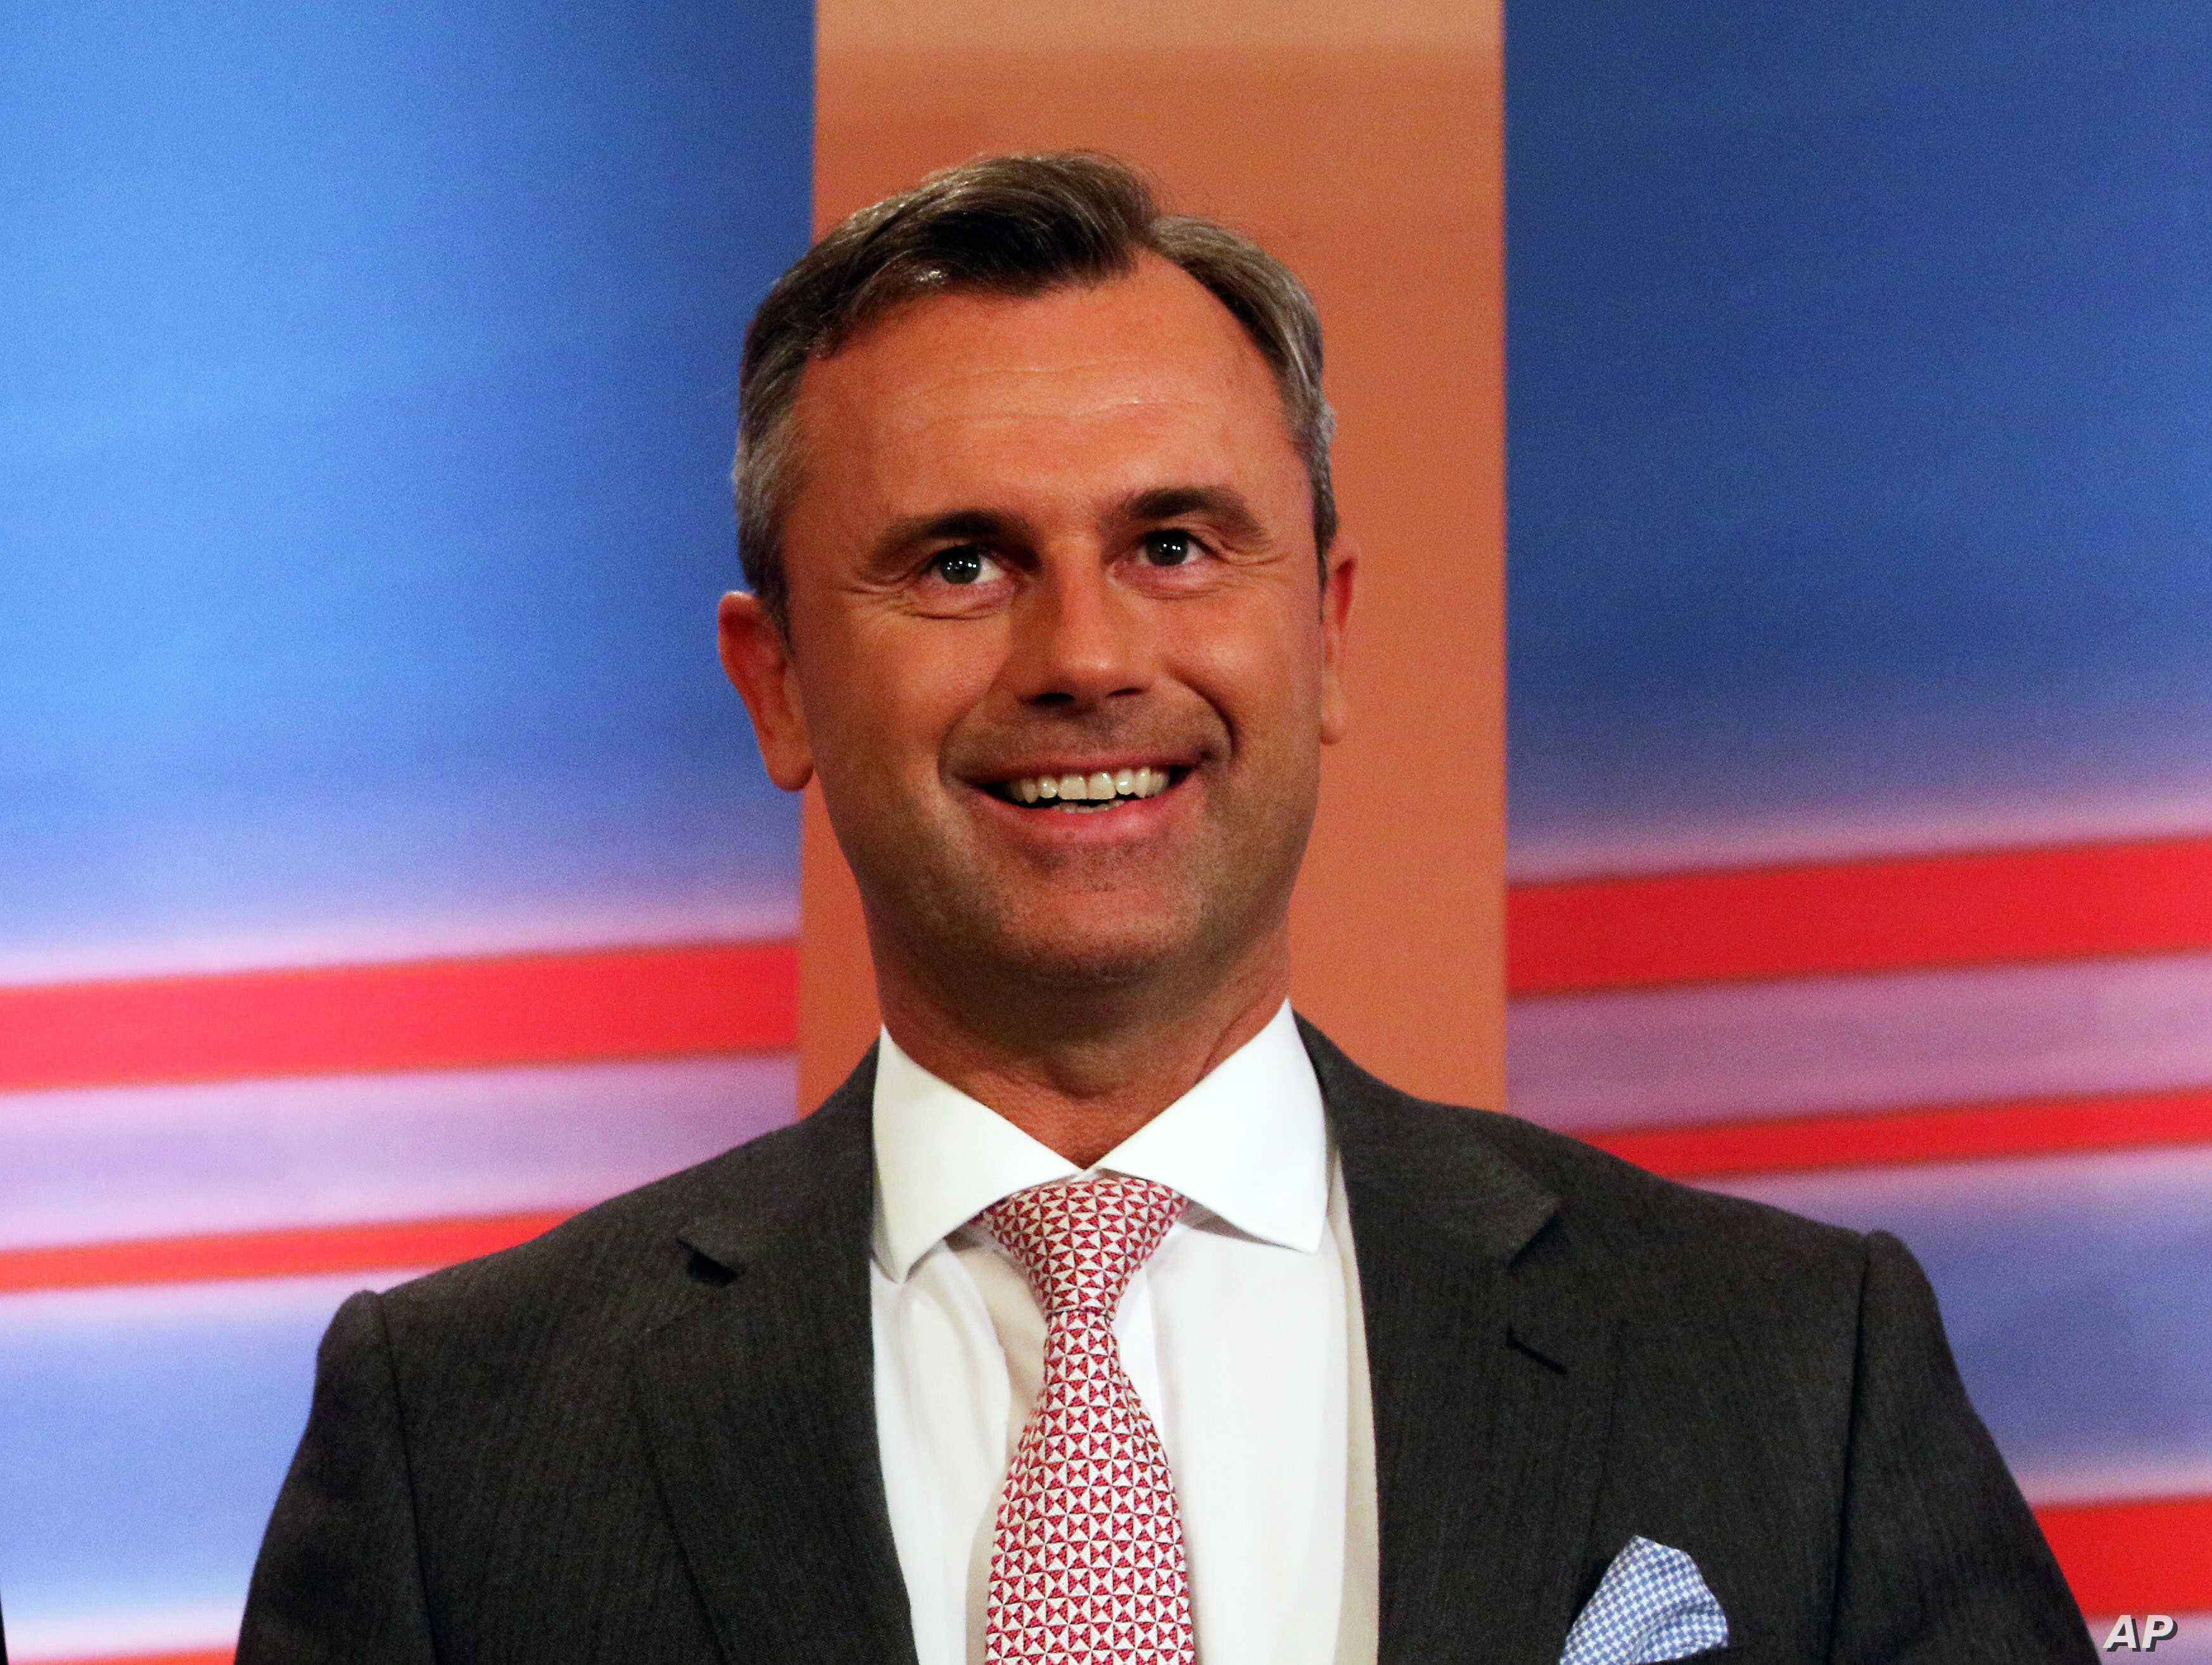 Norbert Hofer, candidate for president of Austria's Freedom Party, FPOE, in Vienna, April 24, 2016.